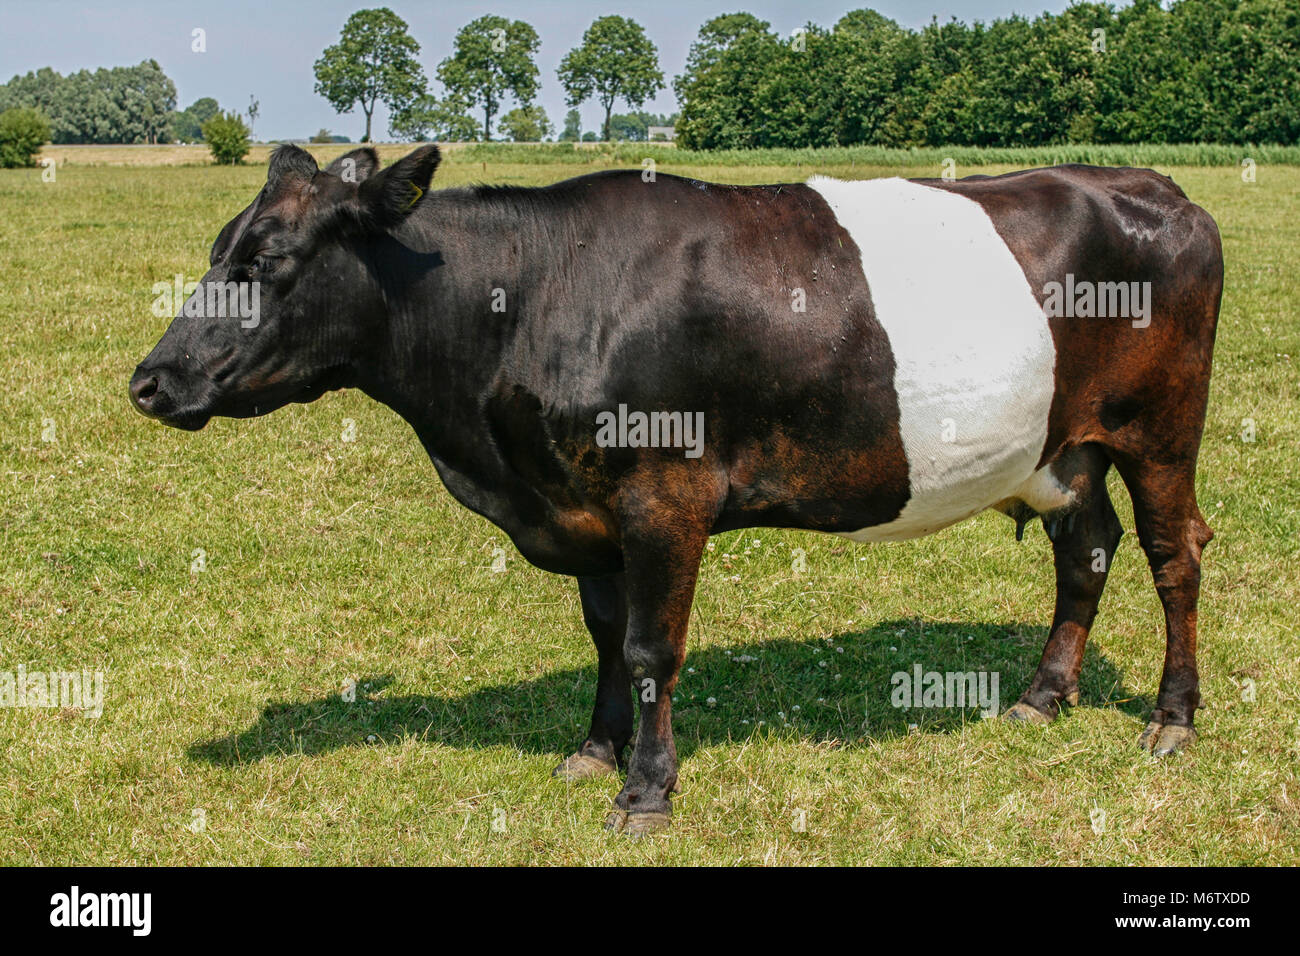 Beautiful Dutch black and white Lakenvelder cow standing in field. Unique Dutch breed. - Stock Image